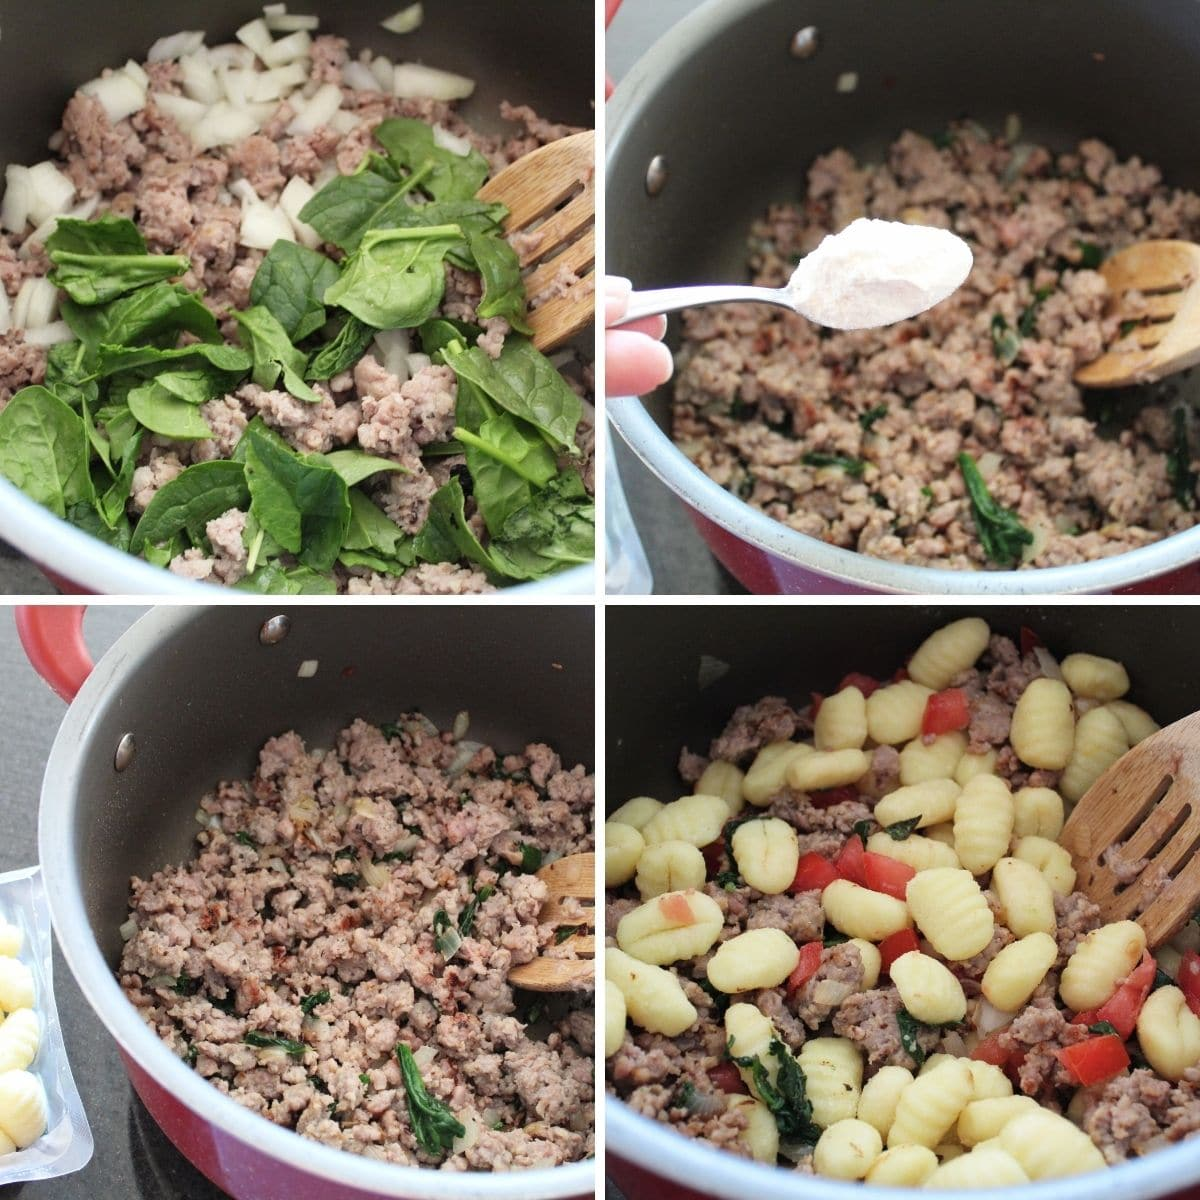 Ingredients and steps for making Gnocchi, Sausage & Spinach Soup.